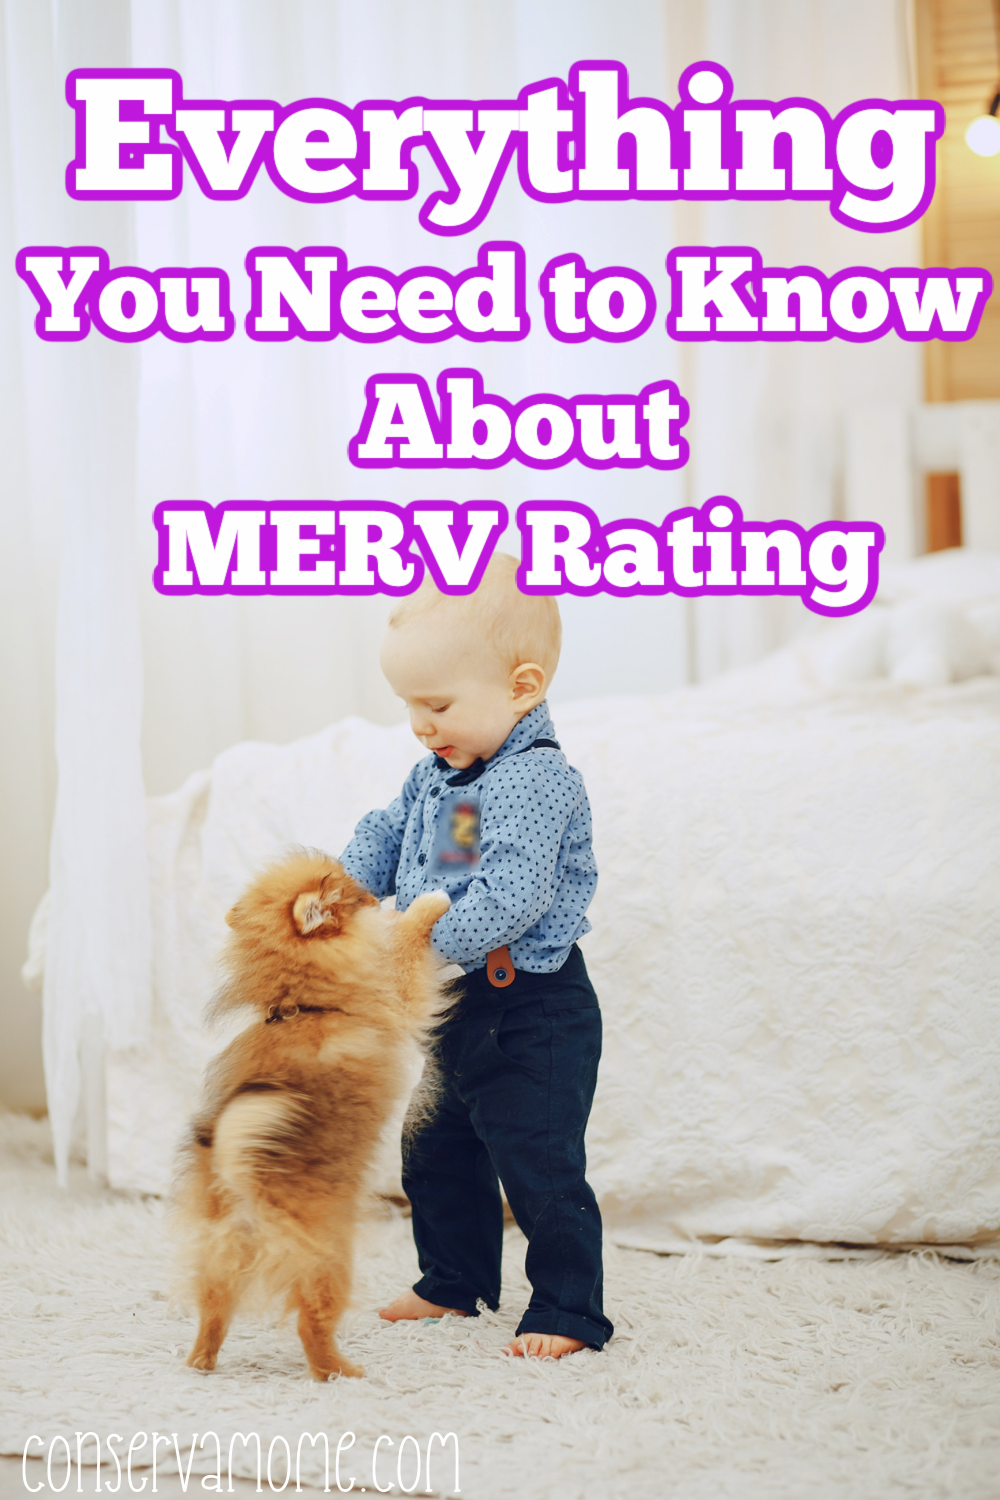 Everything you need to know about MERV Rating